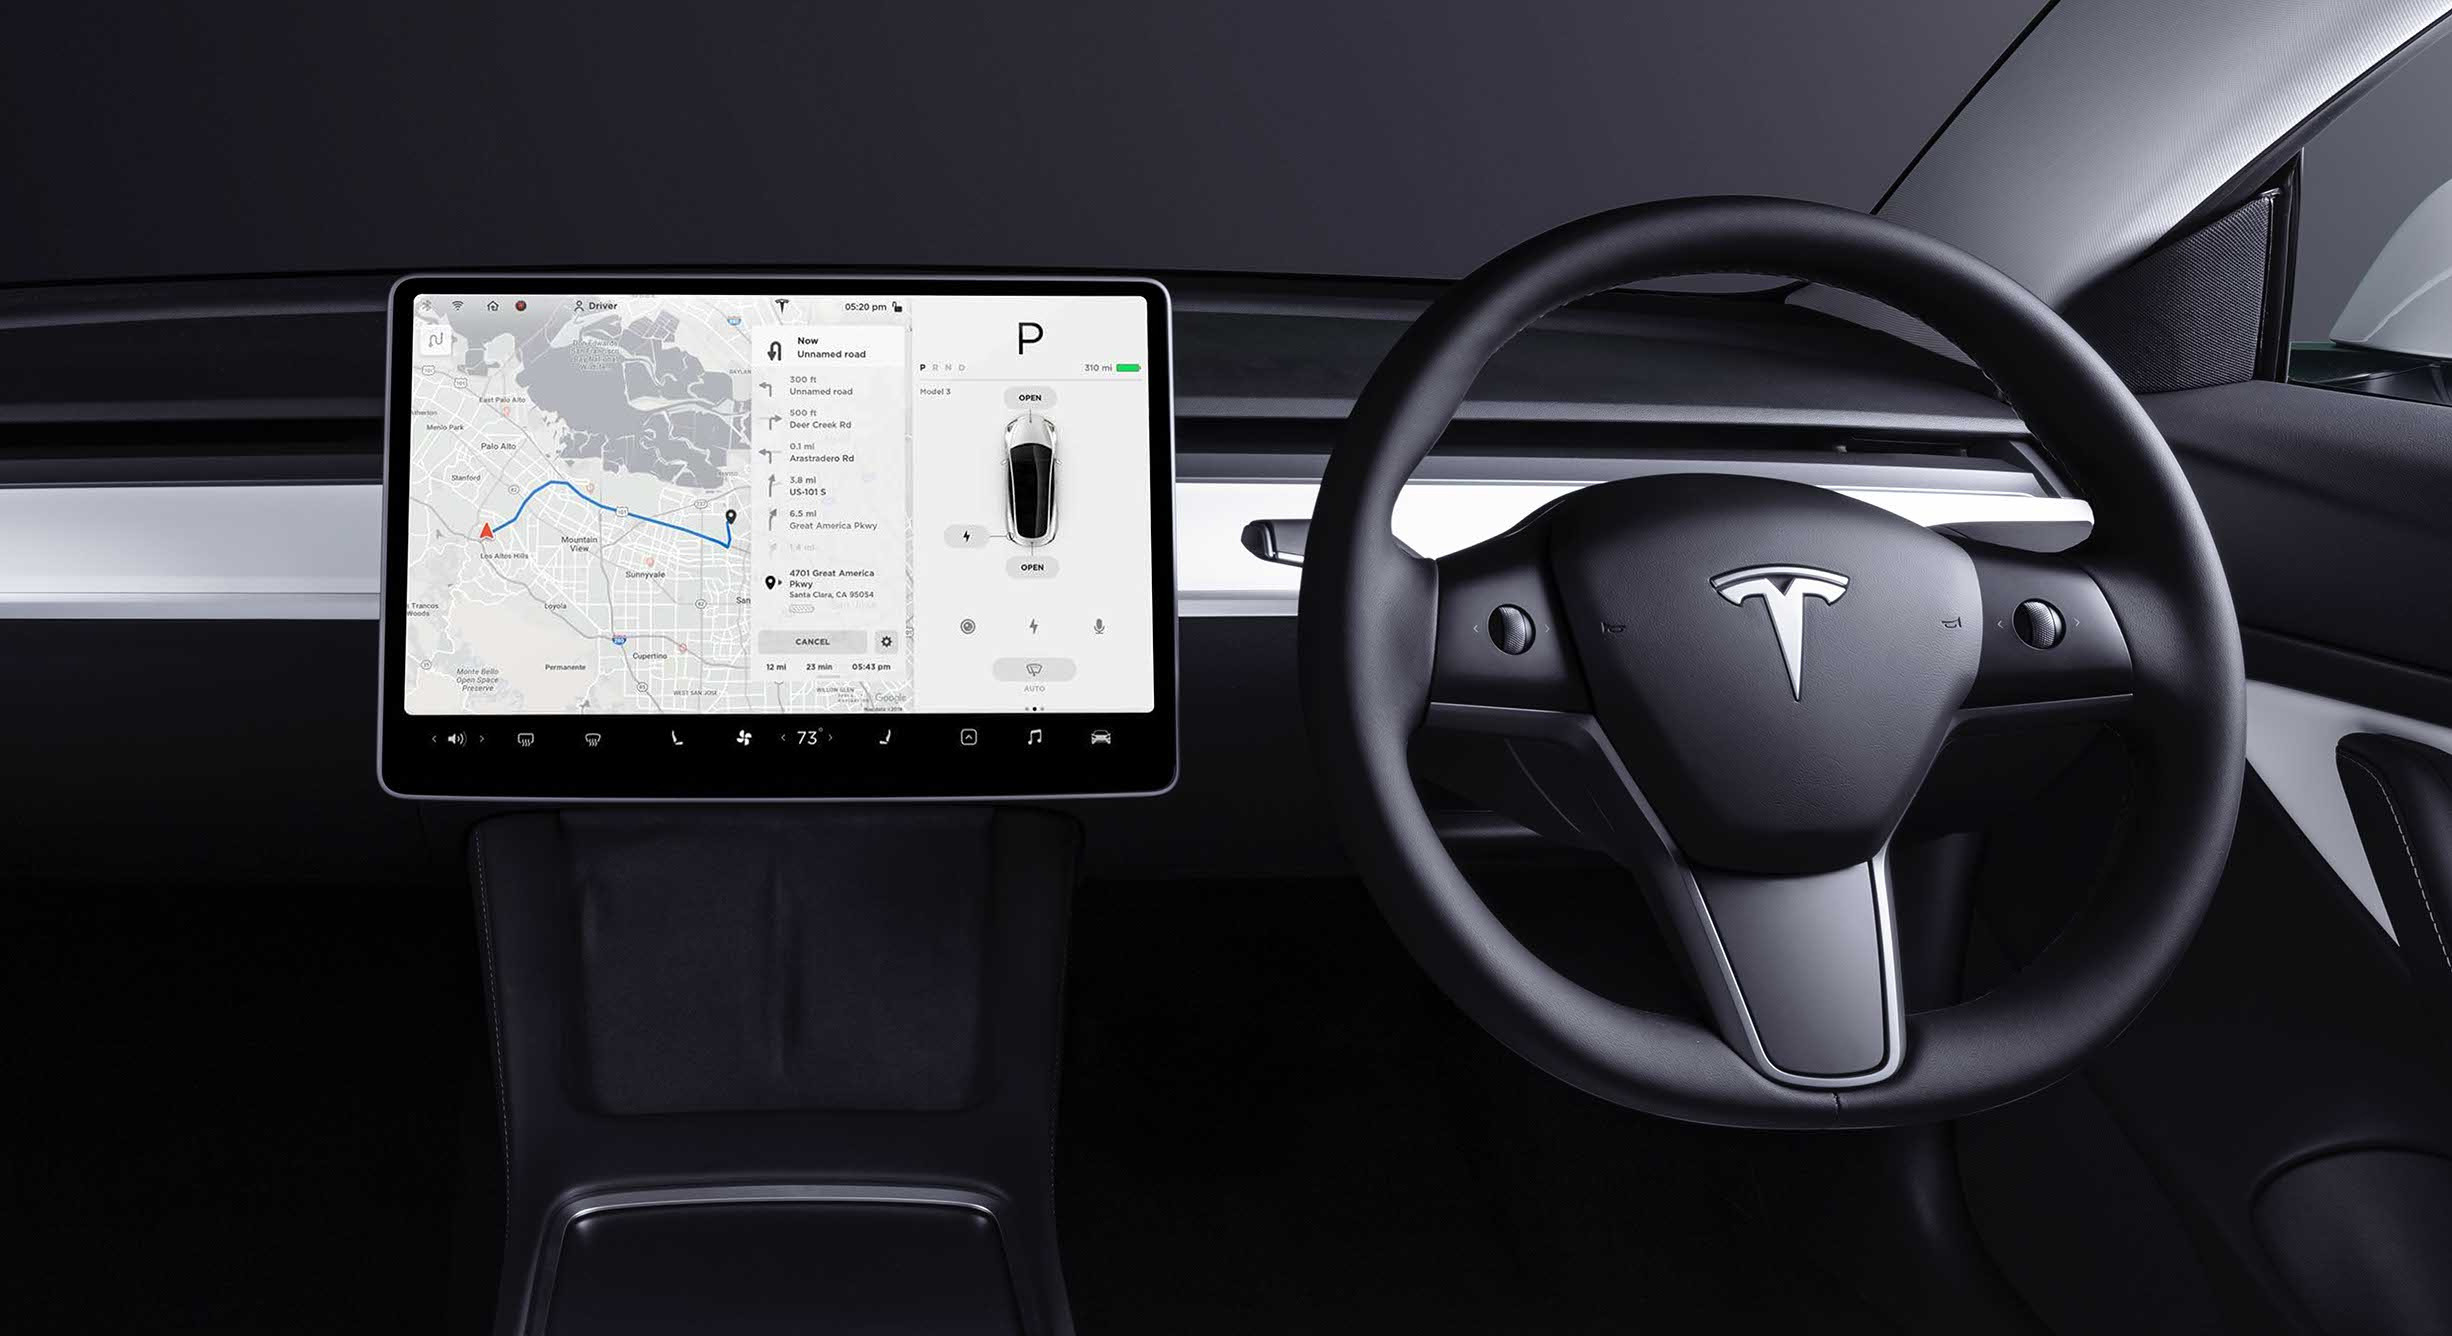 Navigation screen on Model 3 touchscreen